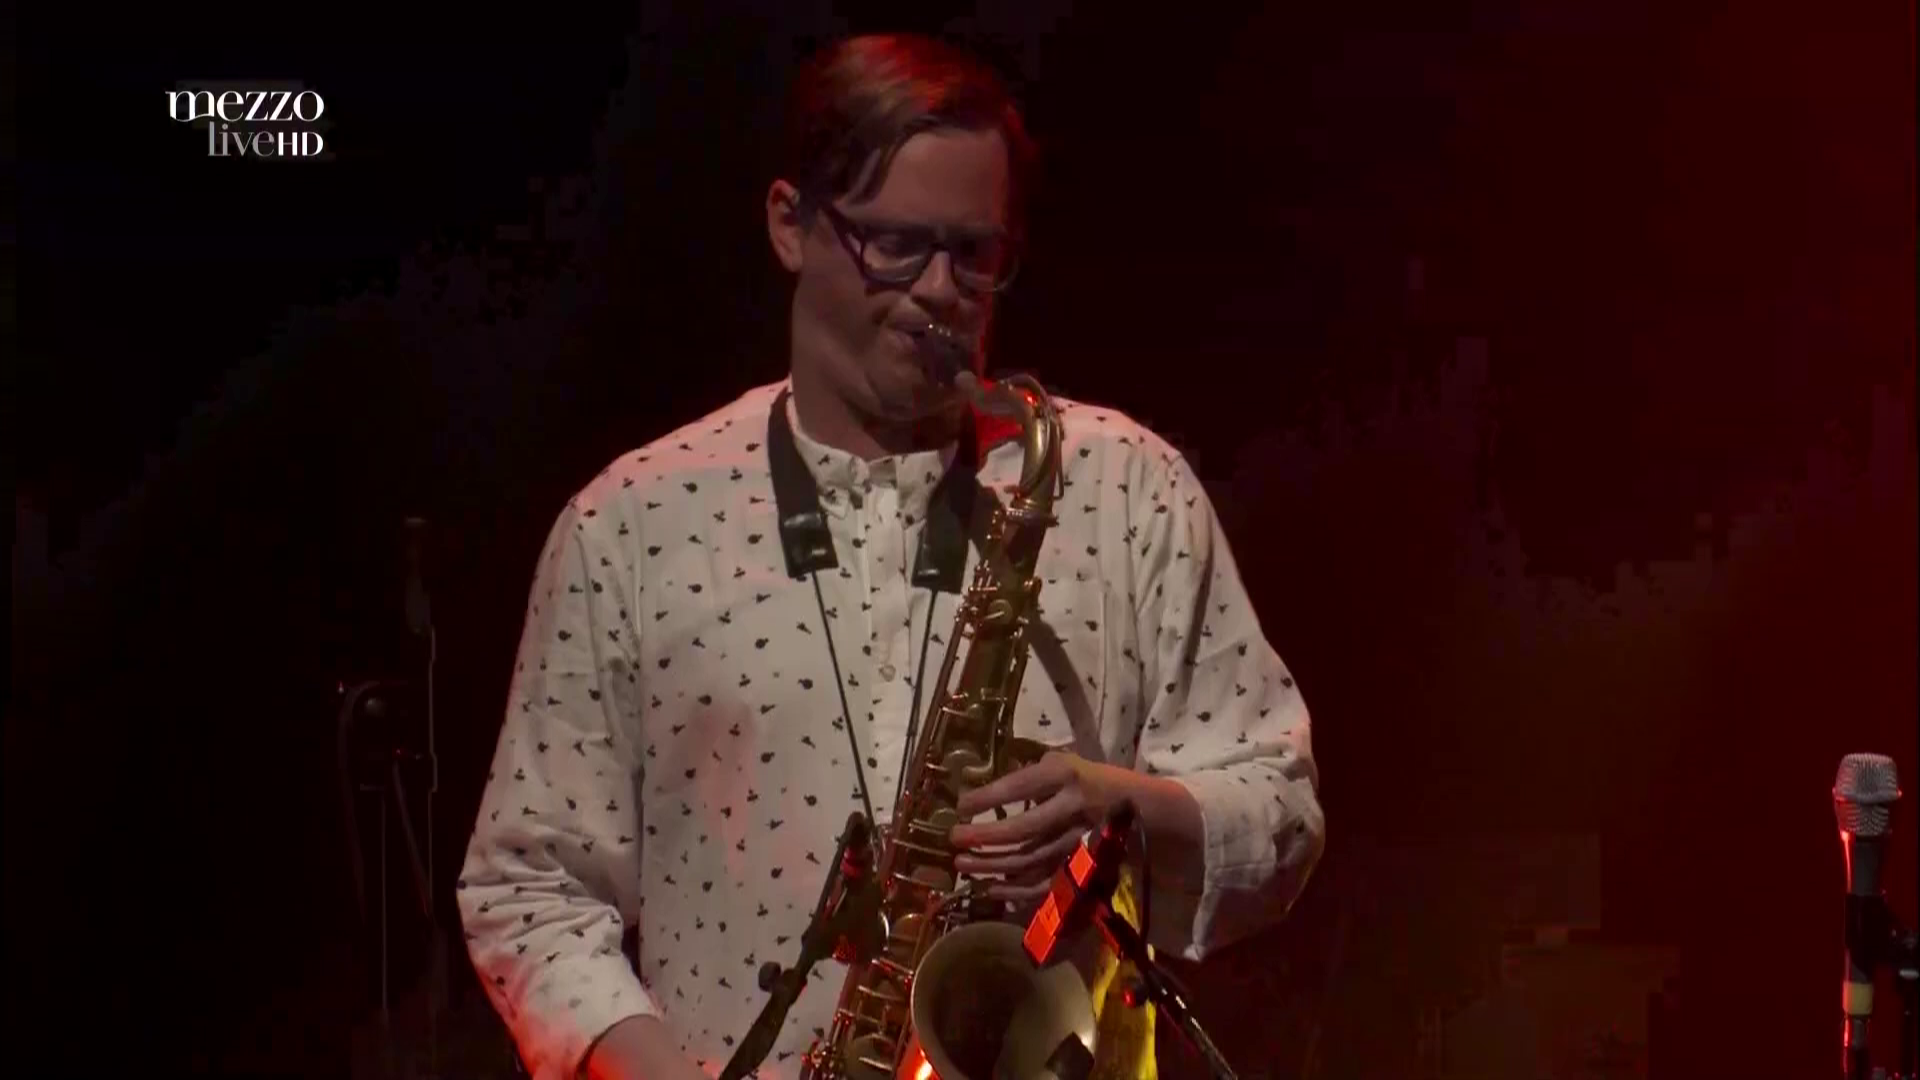 2017 Snarky Puppy - Live In Paris [HDTV 1080i] 1